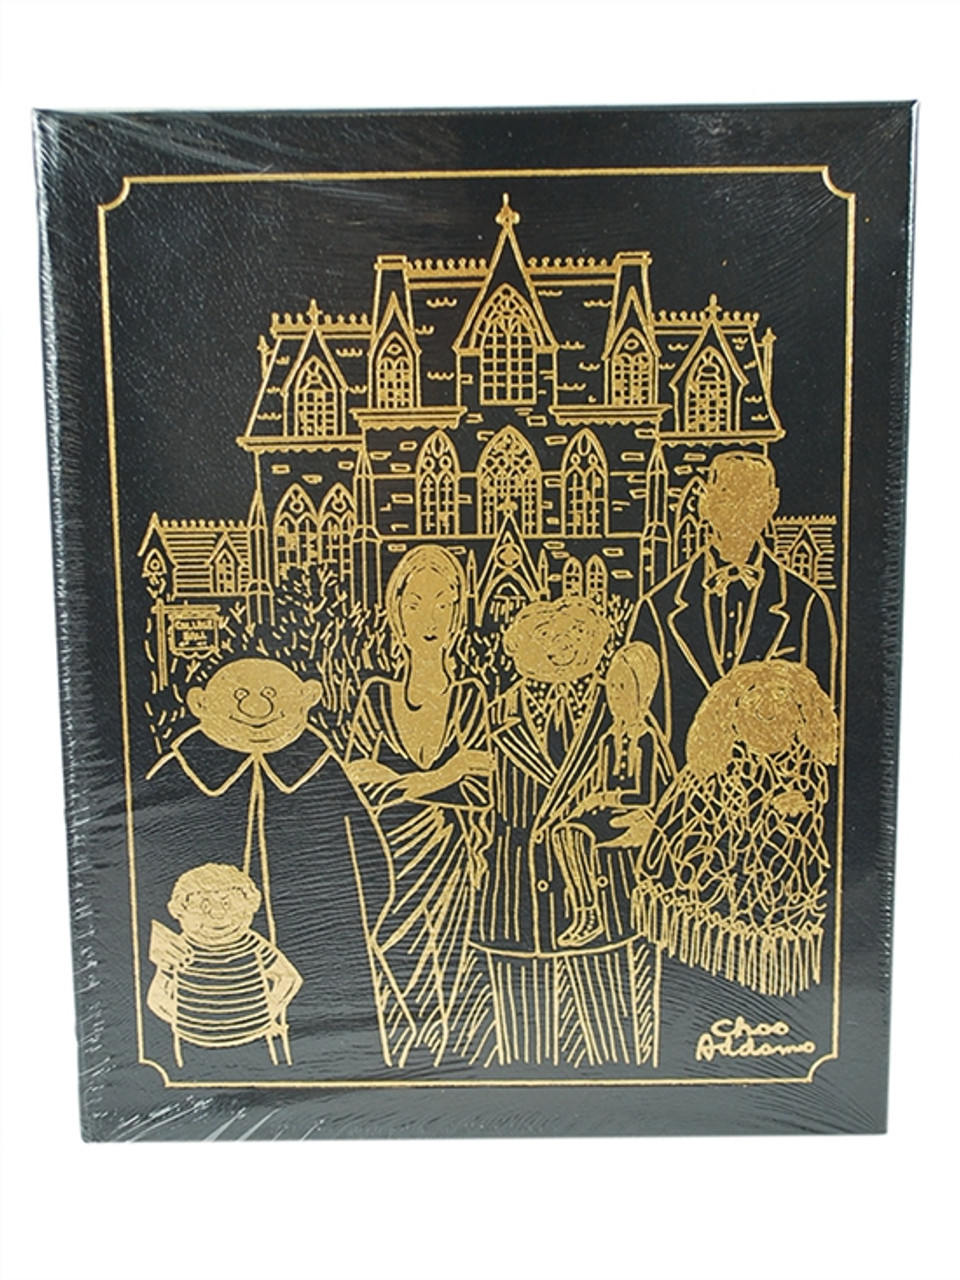 """Easton Press """"The Addams Family: An Evilution"""" Kevin Miserocchi and Charles Addams, Leather Bound Collector's Edition [Sealed]"""